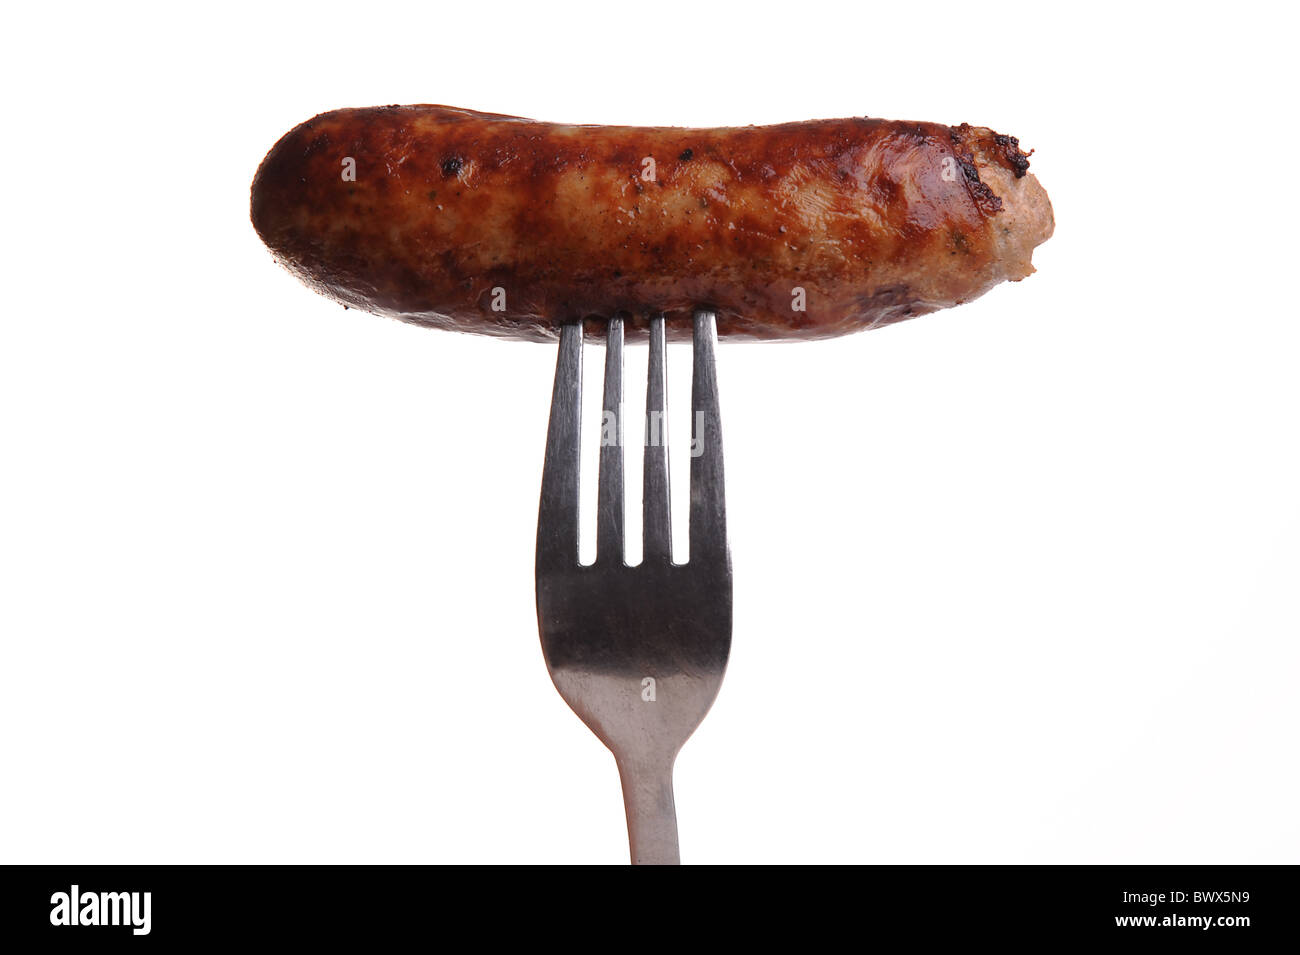 Sausage on a fork - Stock Image